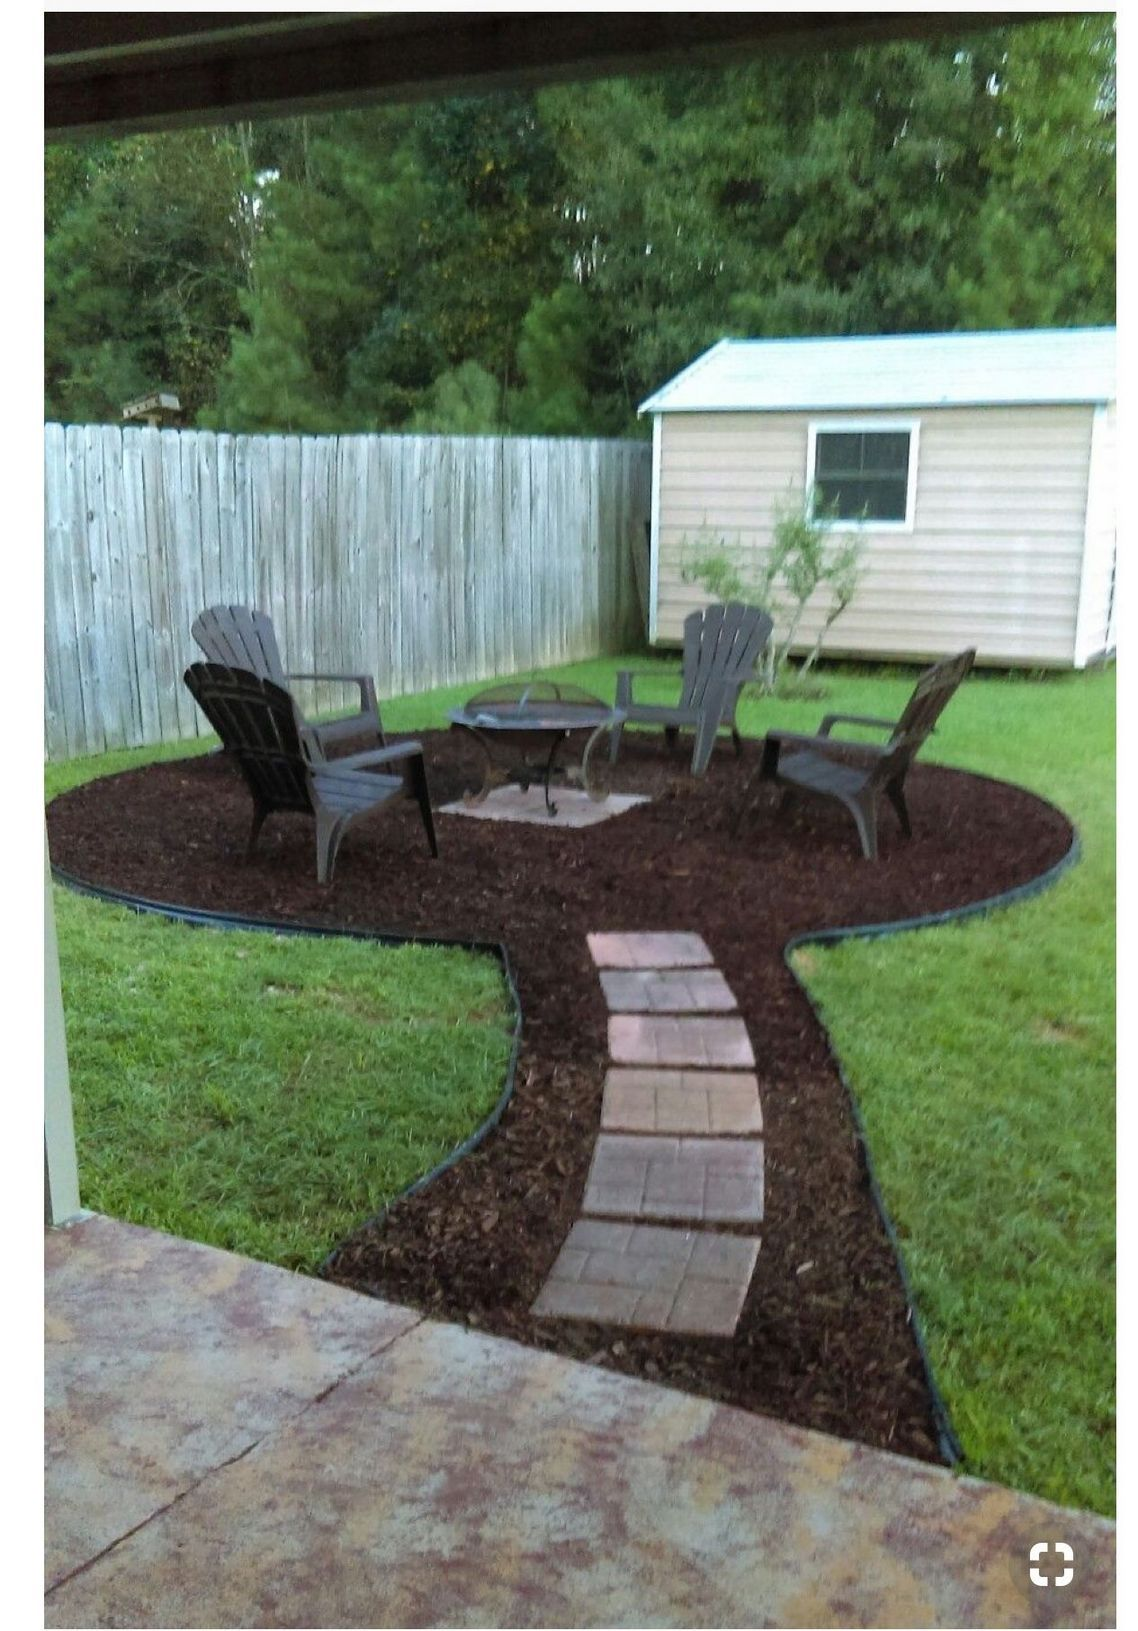 70 Awesome Fire Pit Plans Ideas To Make Happy With Your Family Inspira Spaces Backyard Landscaping Designs Backyard Backyard Fire